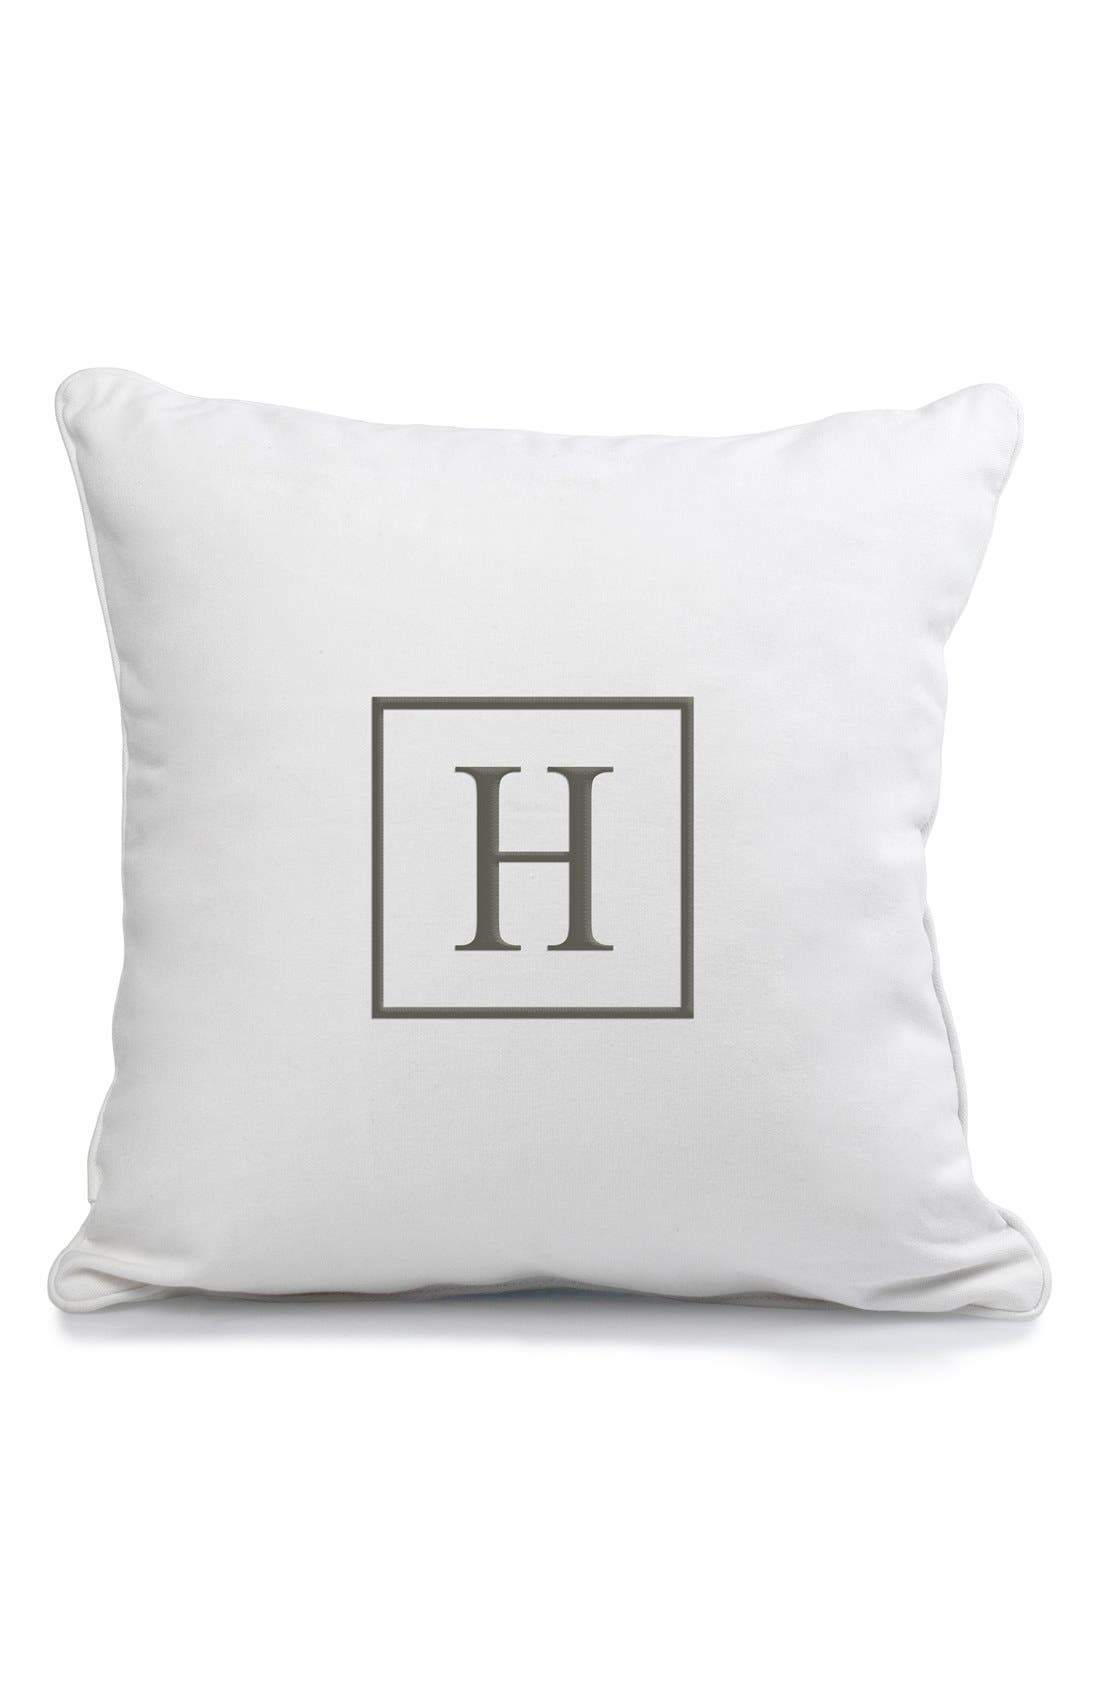 Alternate Image 1 Selected - Cathy's Concepts Monogram Pillow